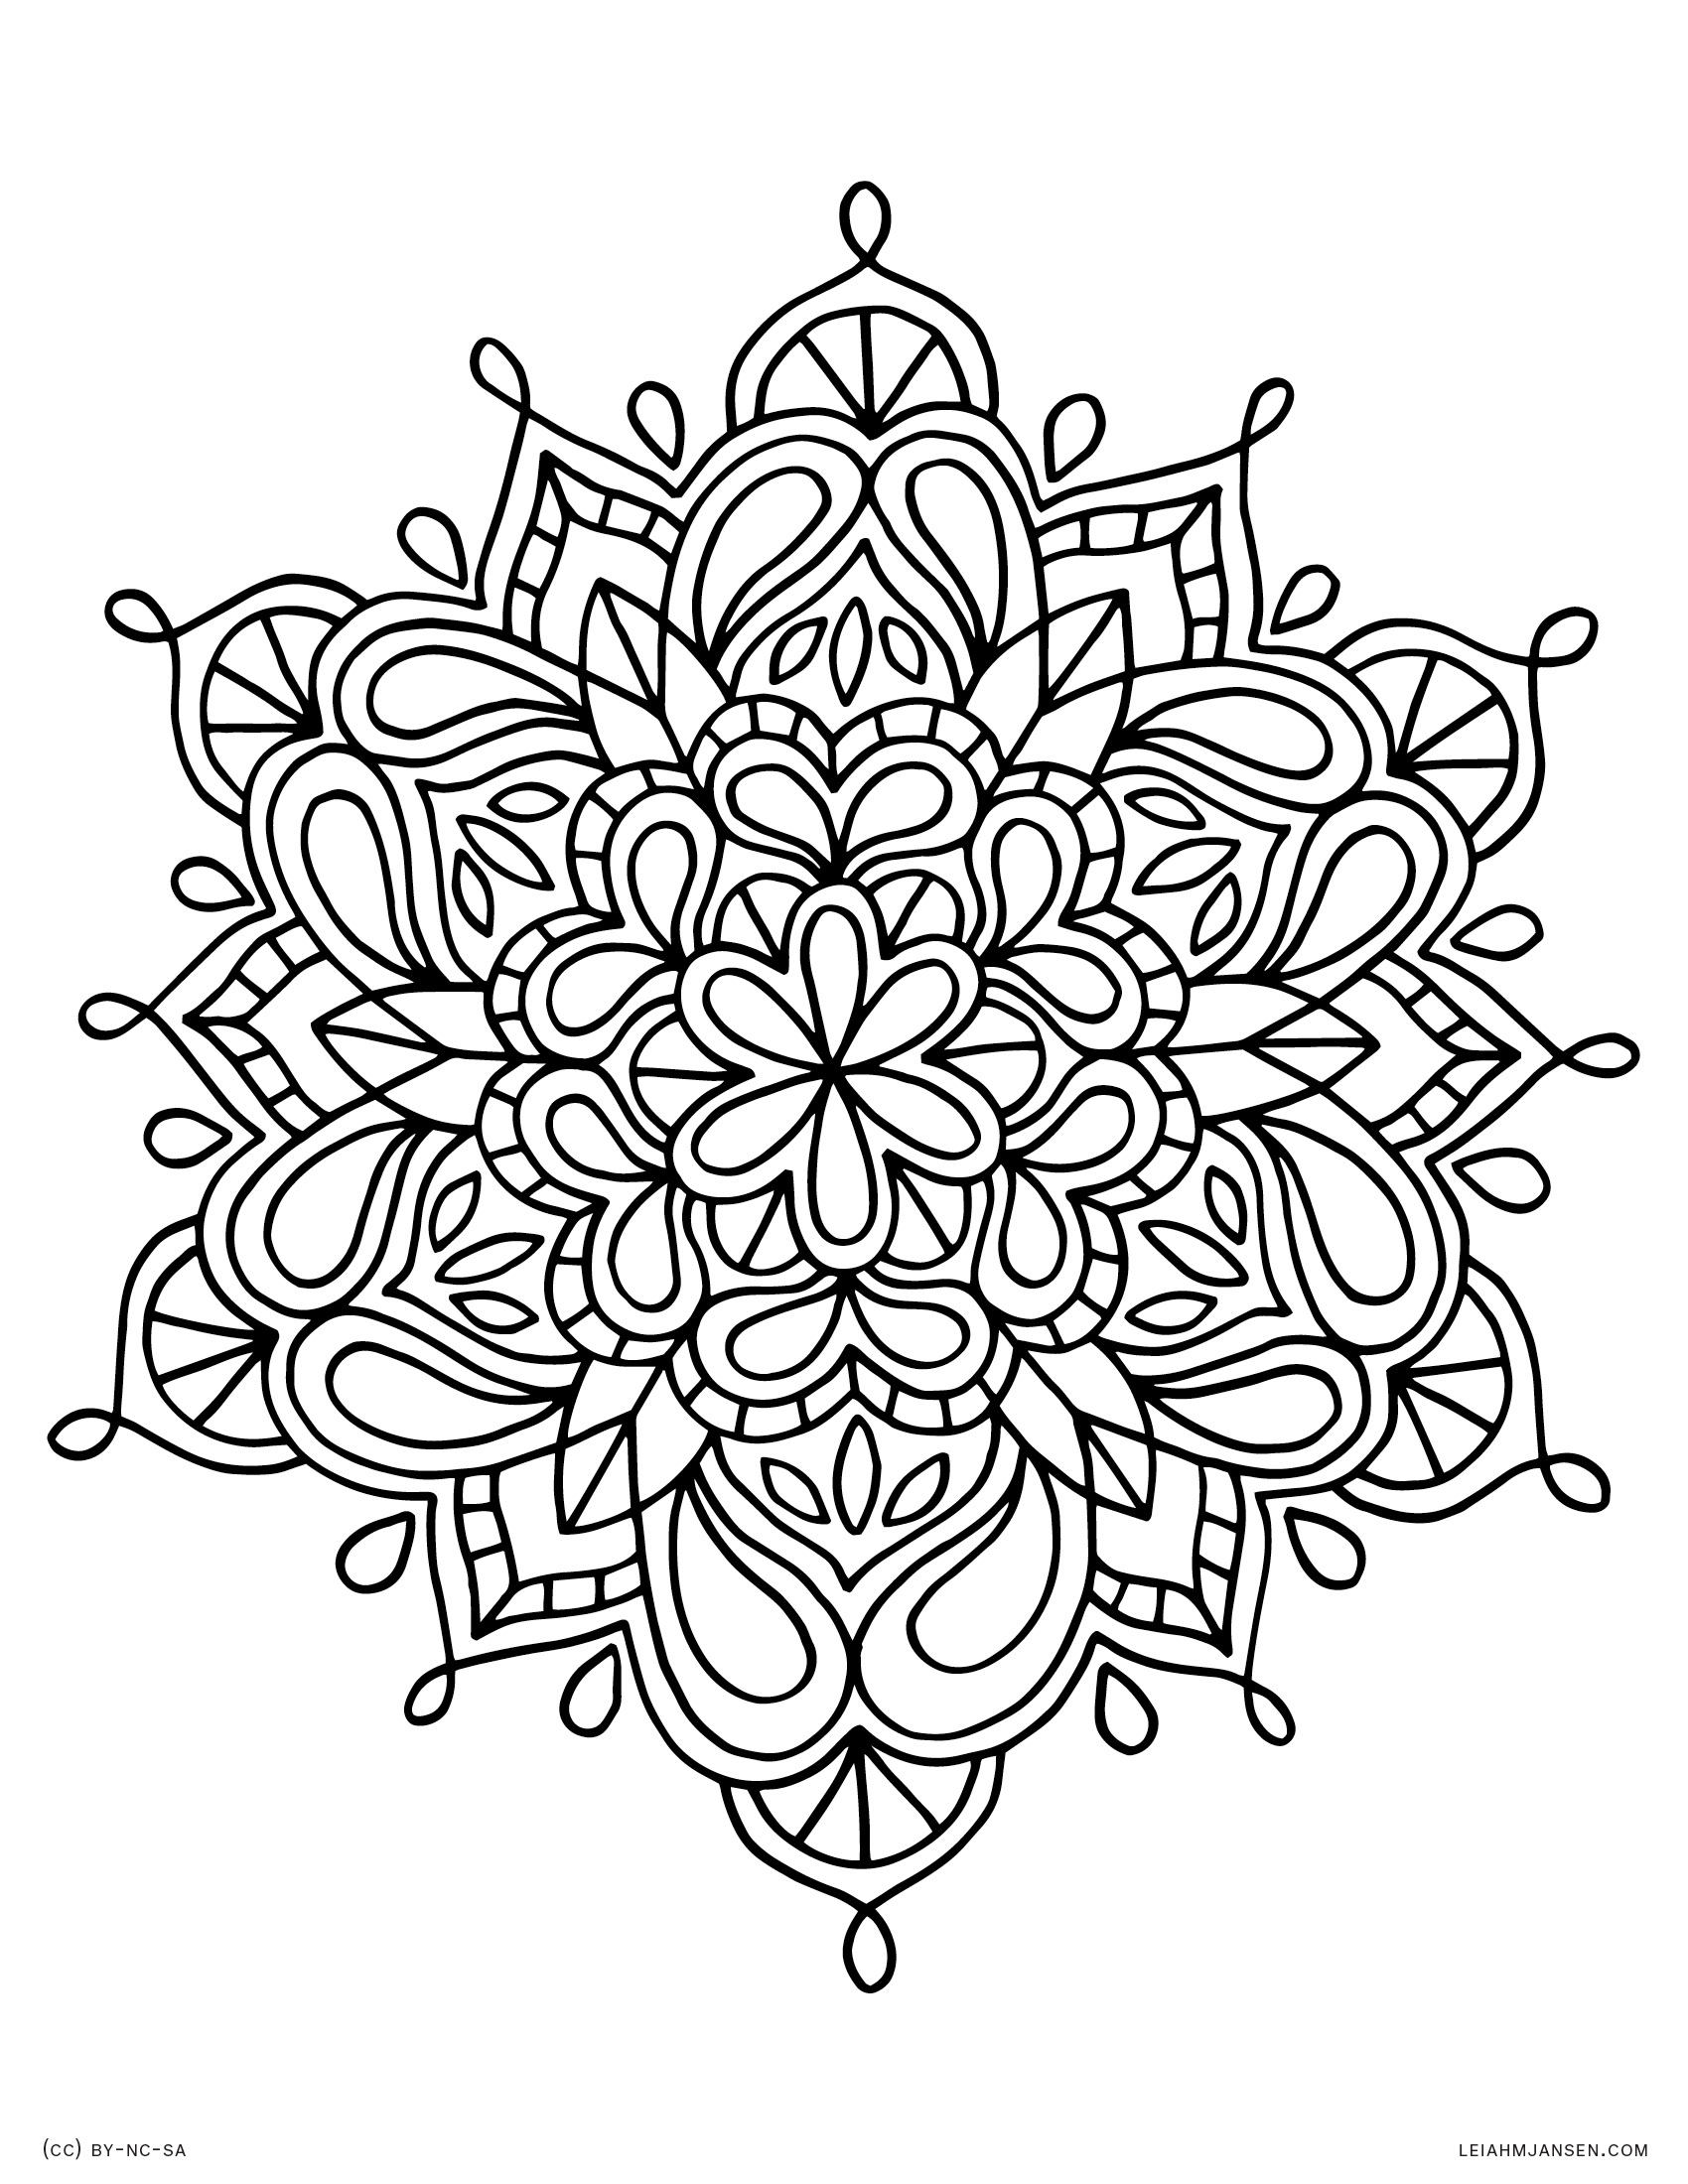 Colouring in pages mandala - Organic Mandala Floral Indian Inspired Mandala Free Printable Coloring Page For Adults And